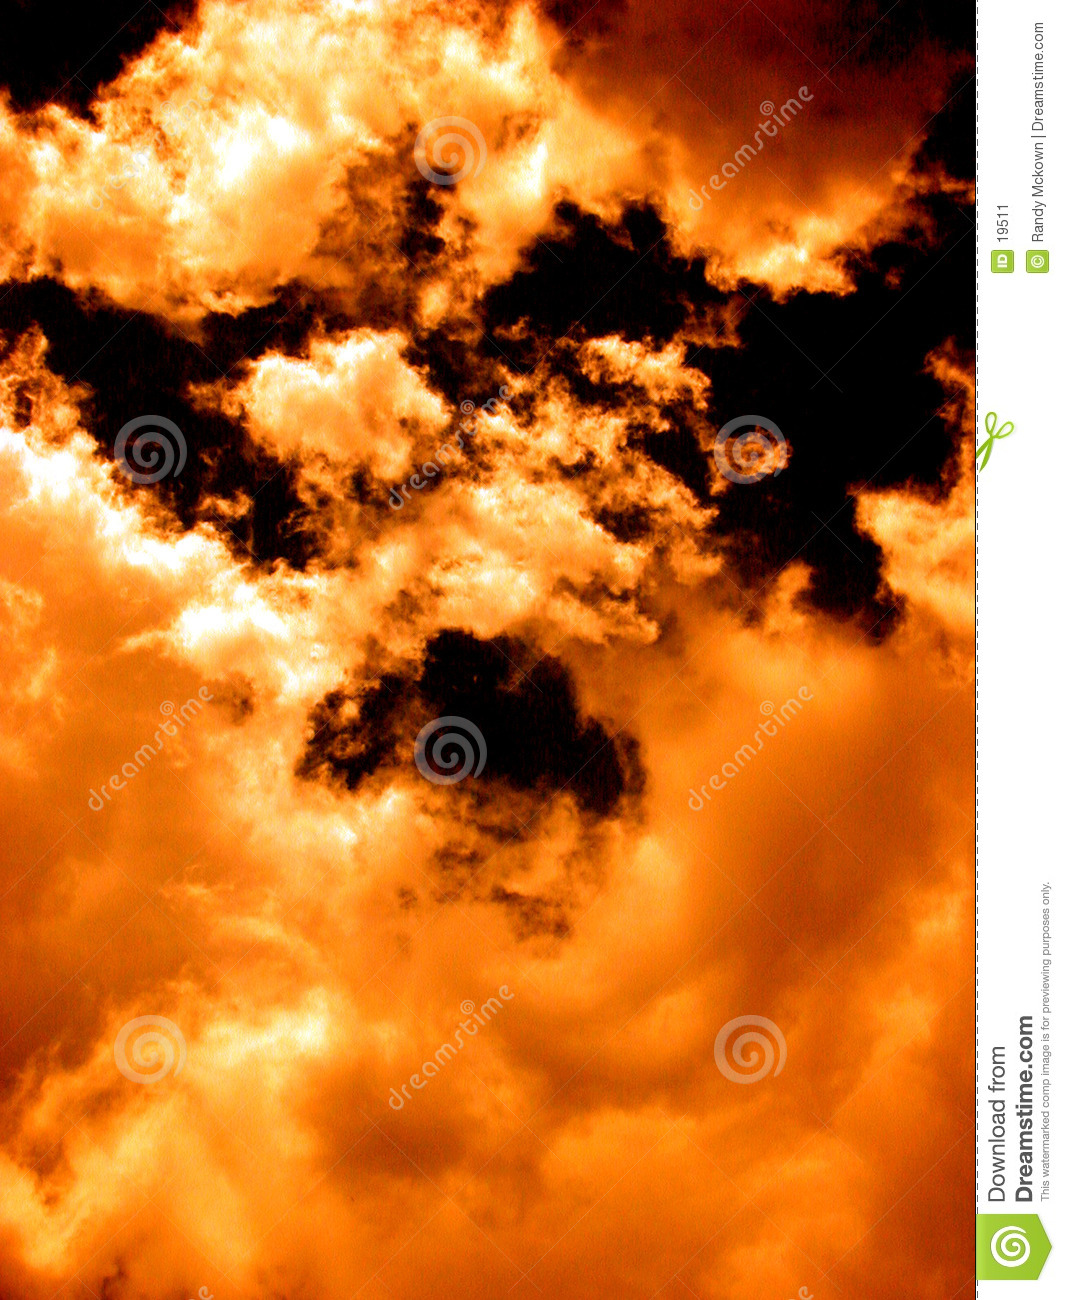 Orange Cloudscape - Fire in the sky